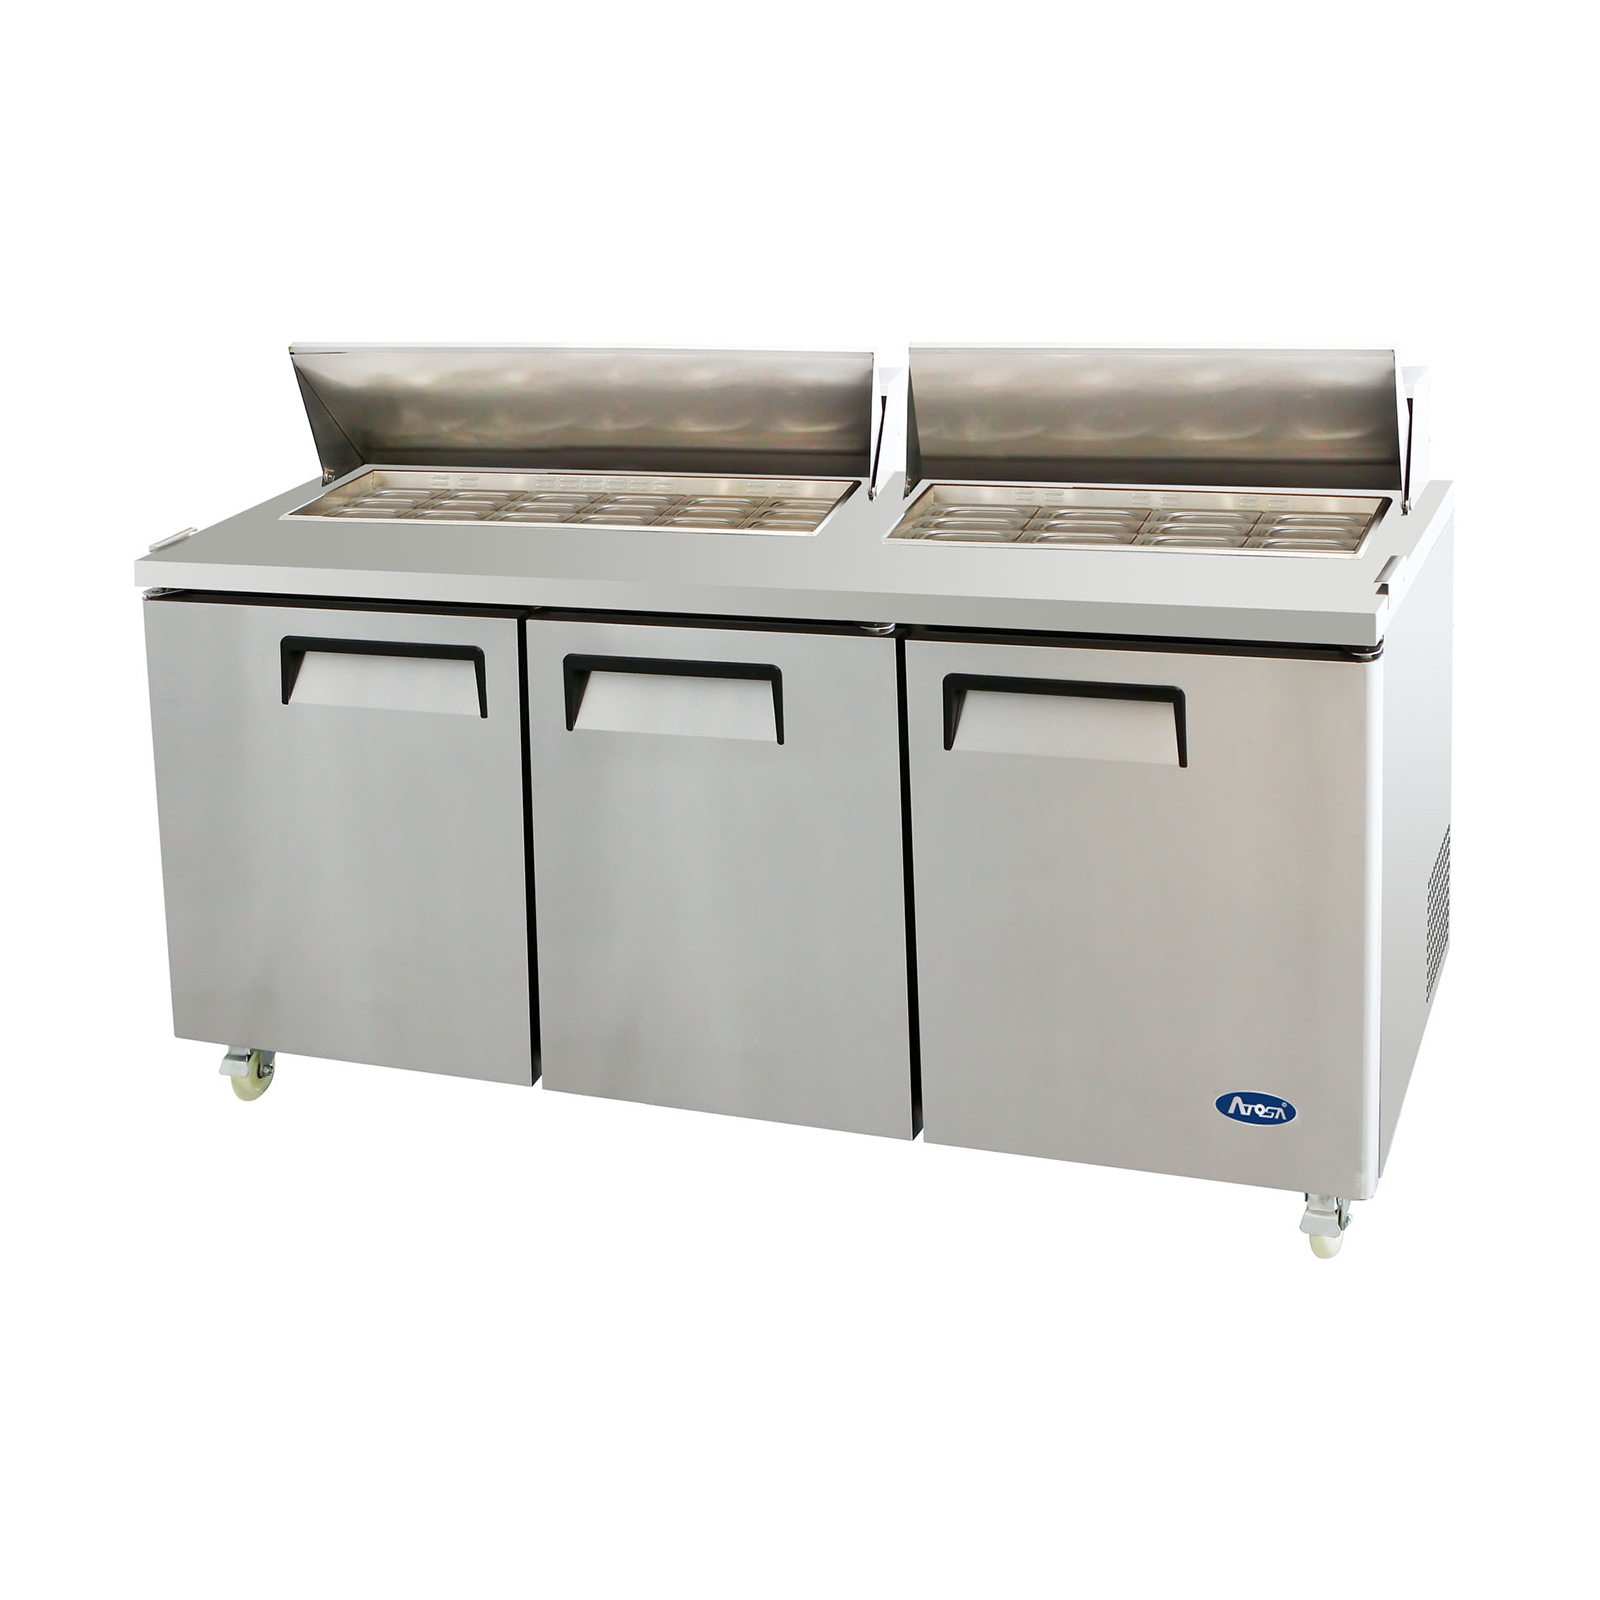 Atosa USA MSF8308GR refrigerated counter, mega top sandwich / salad unit